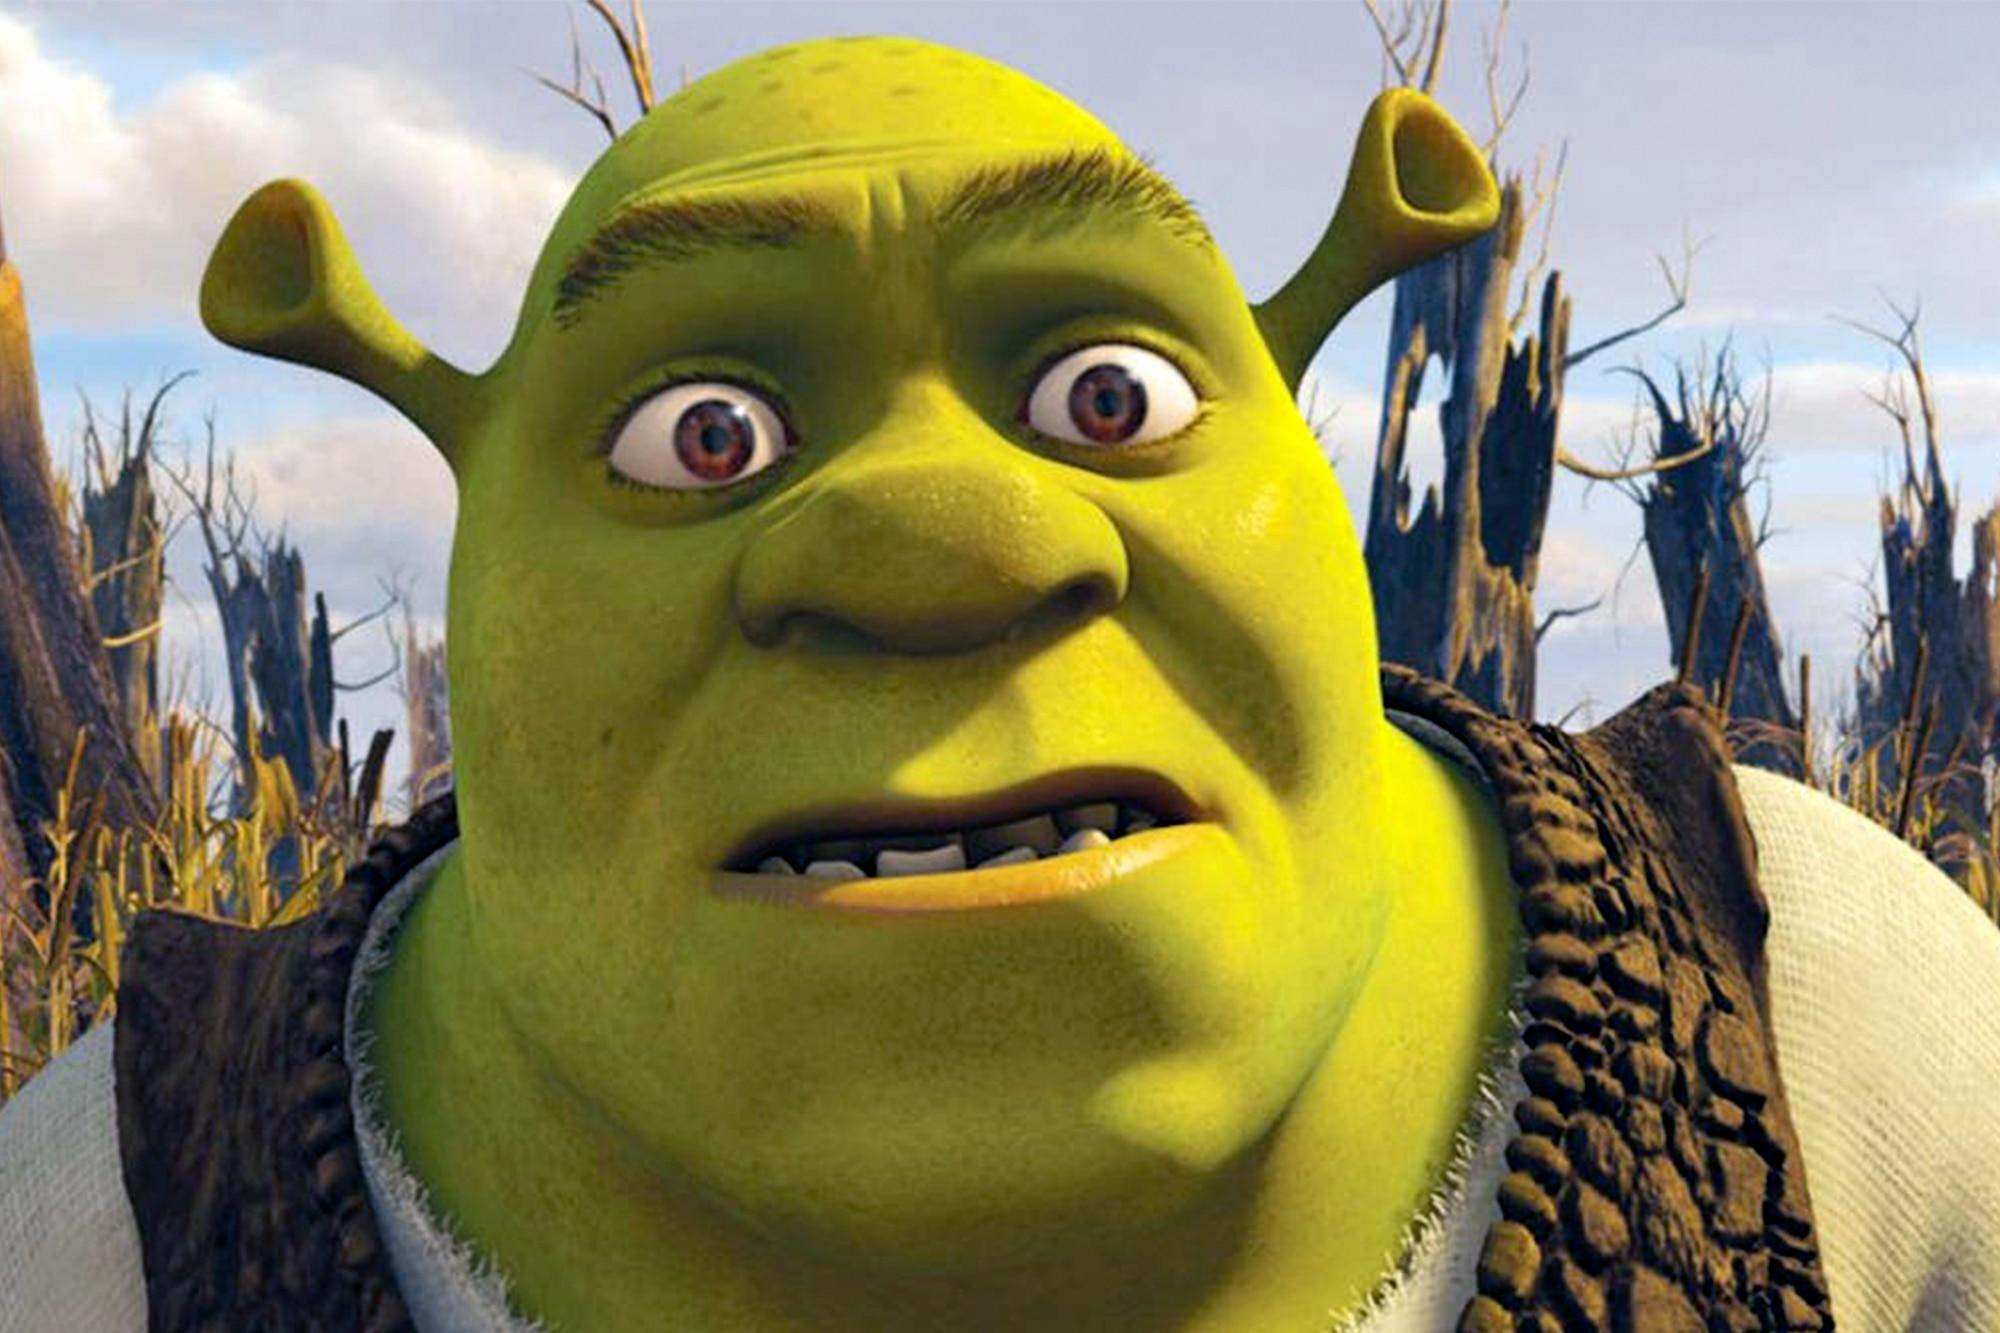 Reveal the macabre end of one of the characters from the movie Shrek